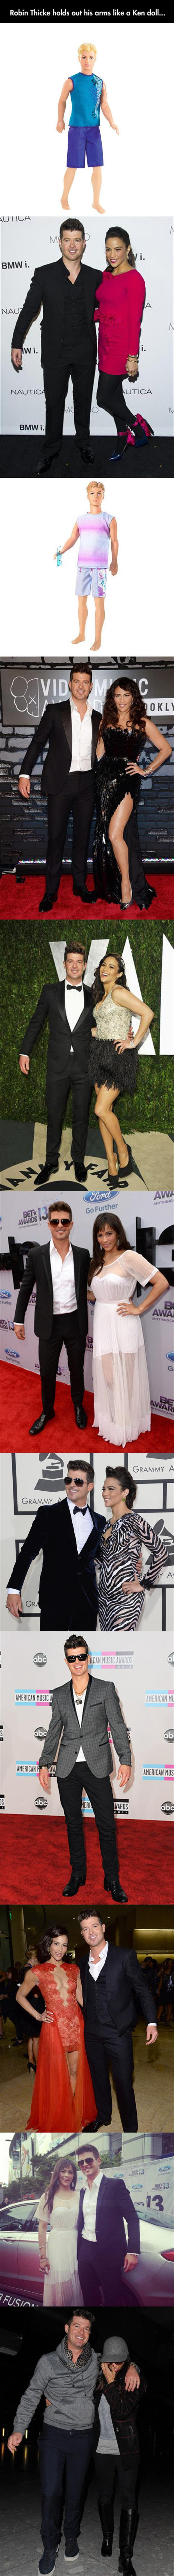 z robin thicke funny pictures